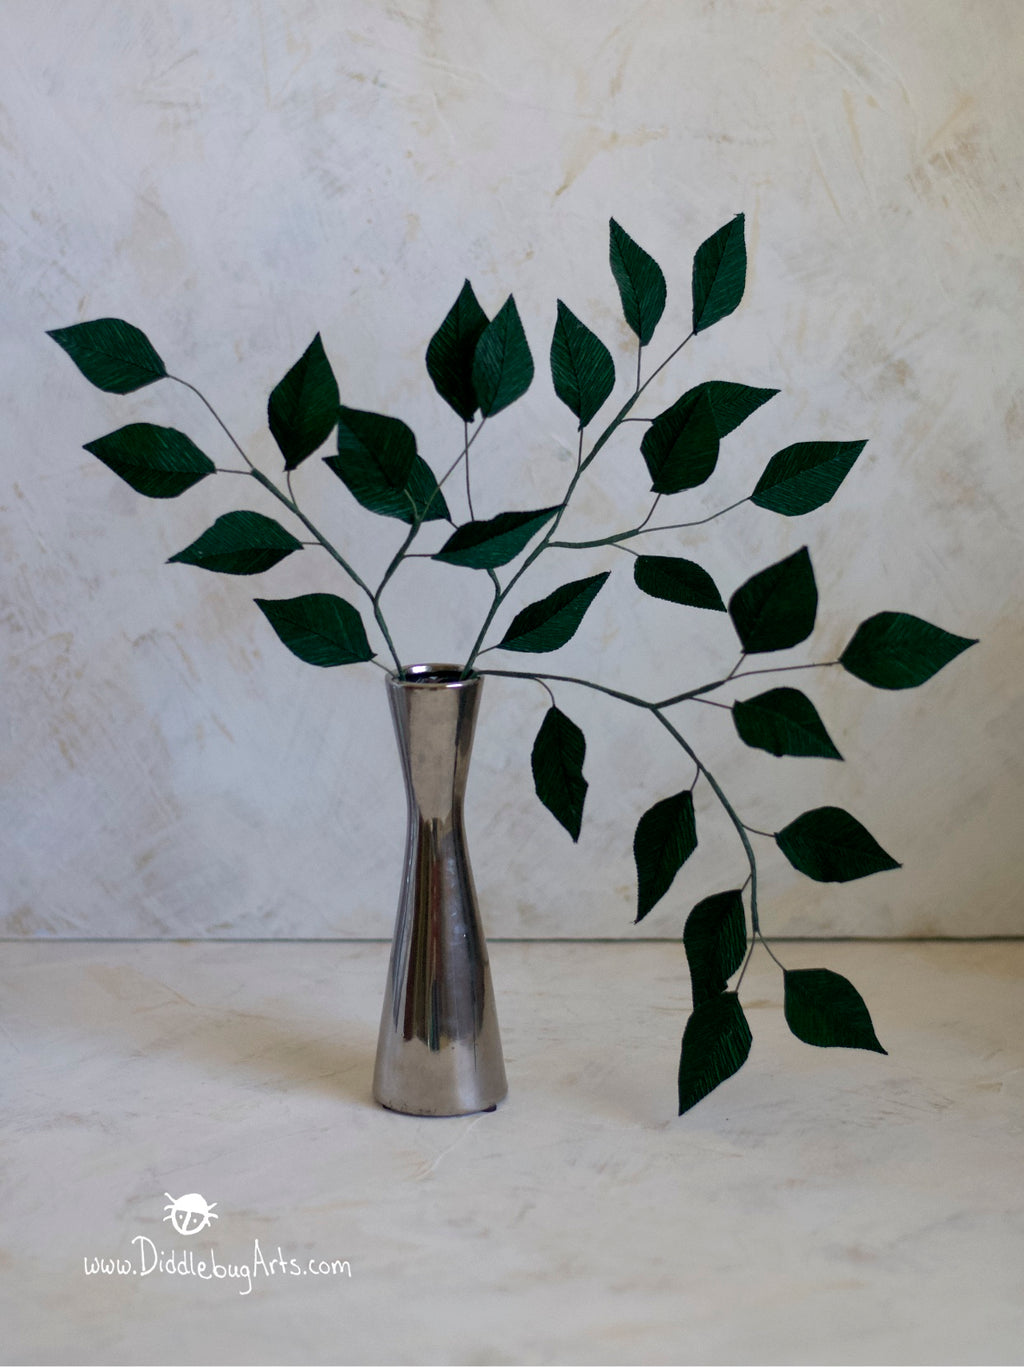 crepe paper leafy branches in a silver vase